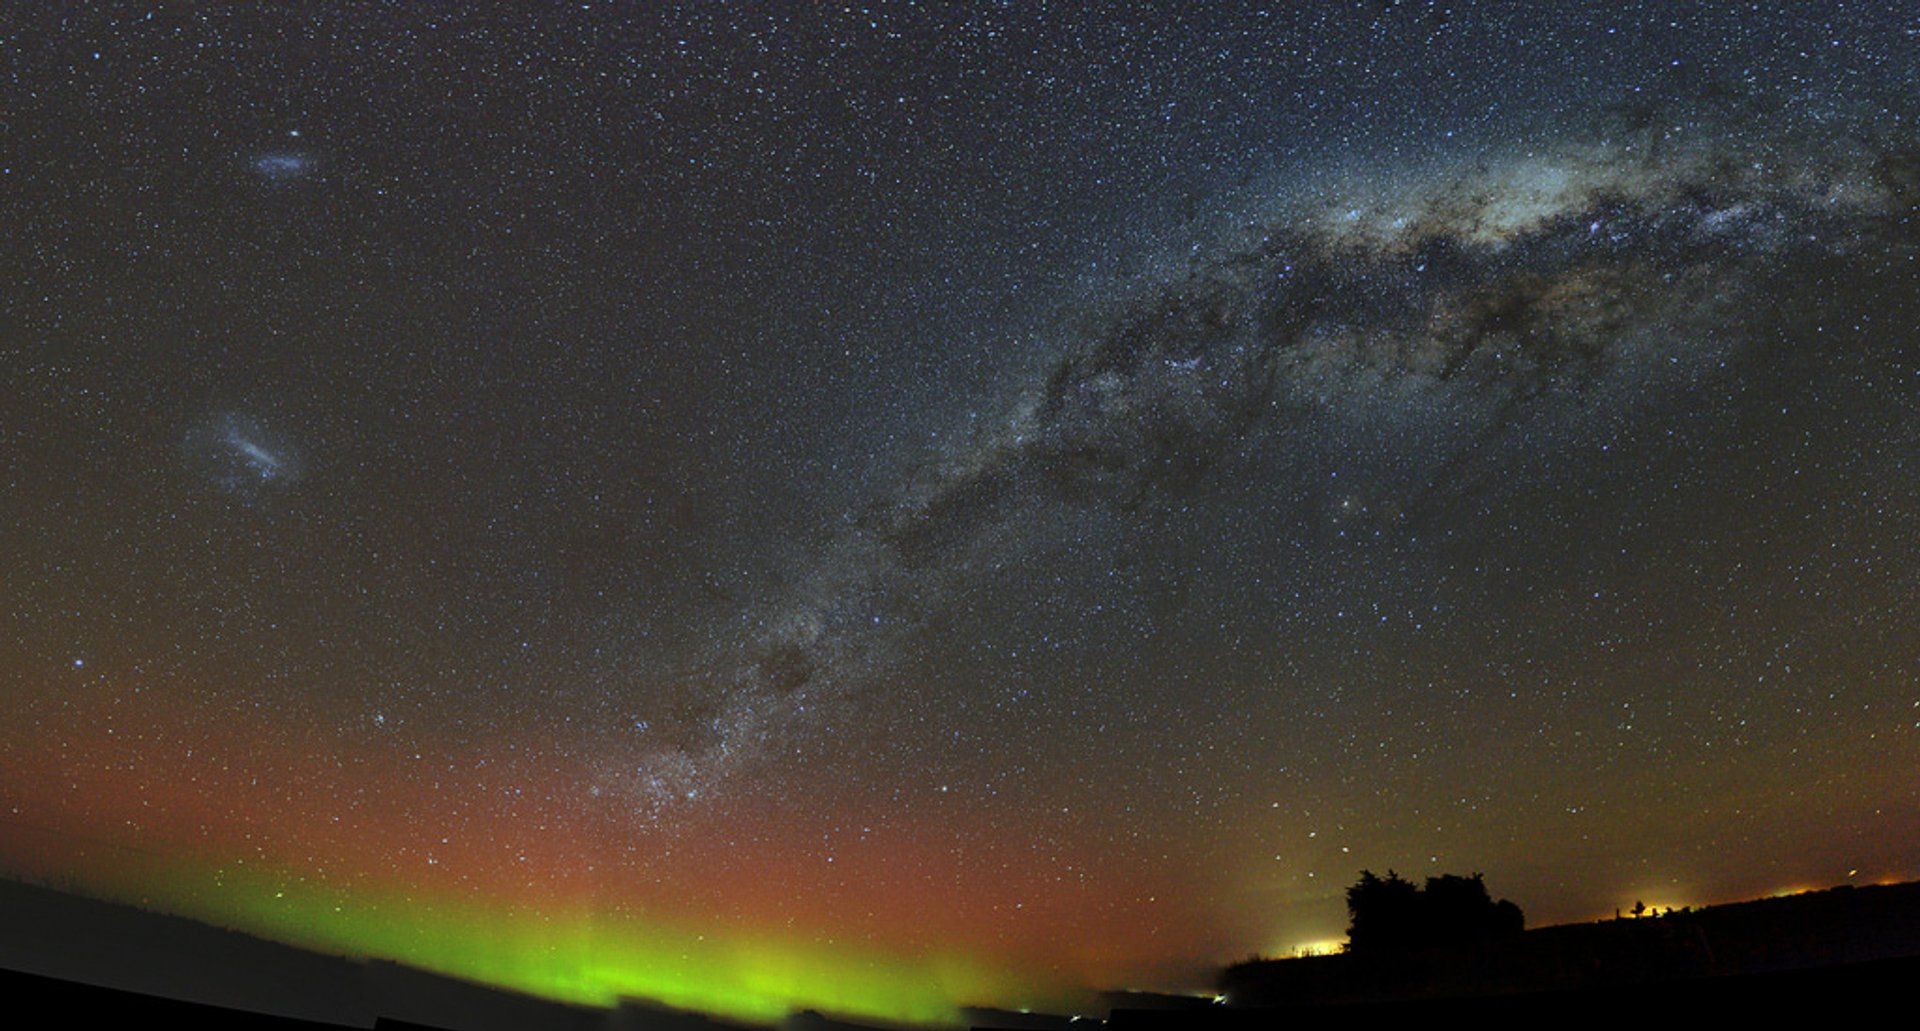 The Milky Way in New Zealand 2019 - Best Time